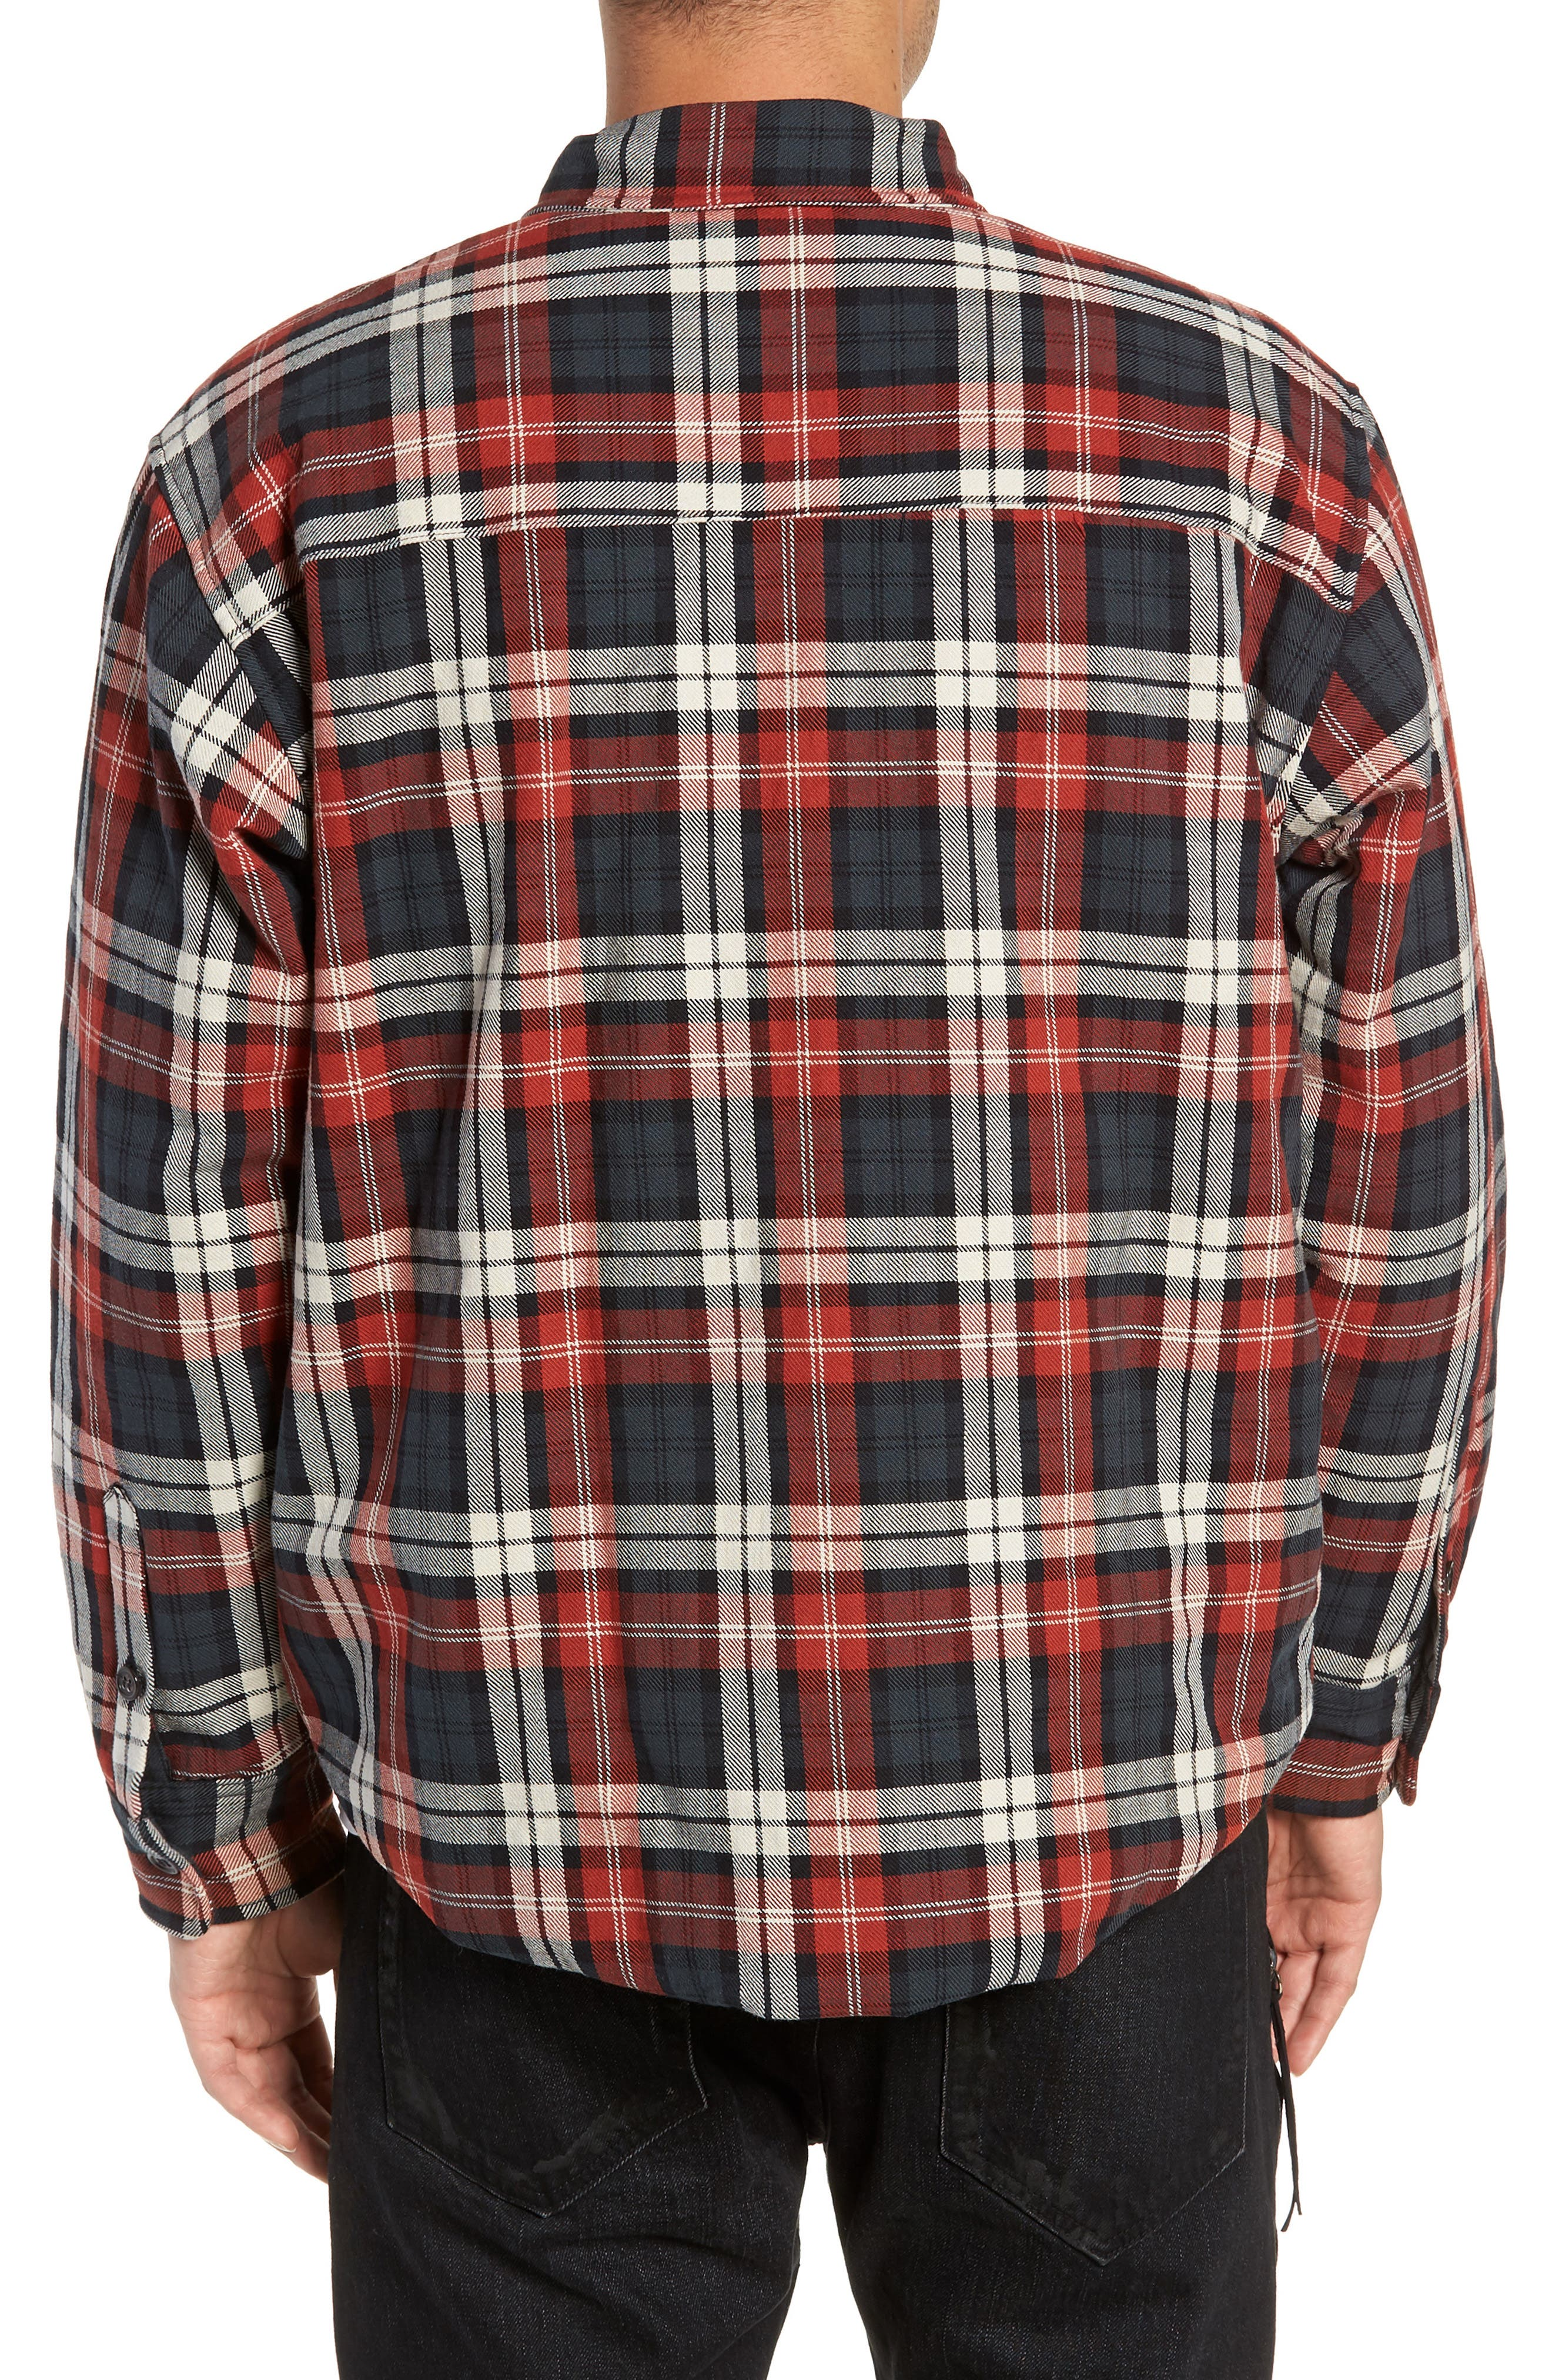 Puffy Classic Fit Work Shirt,                             Alternate thumbnail 2, color,                             RED PLAID